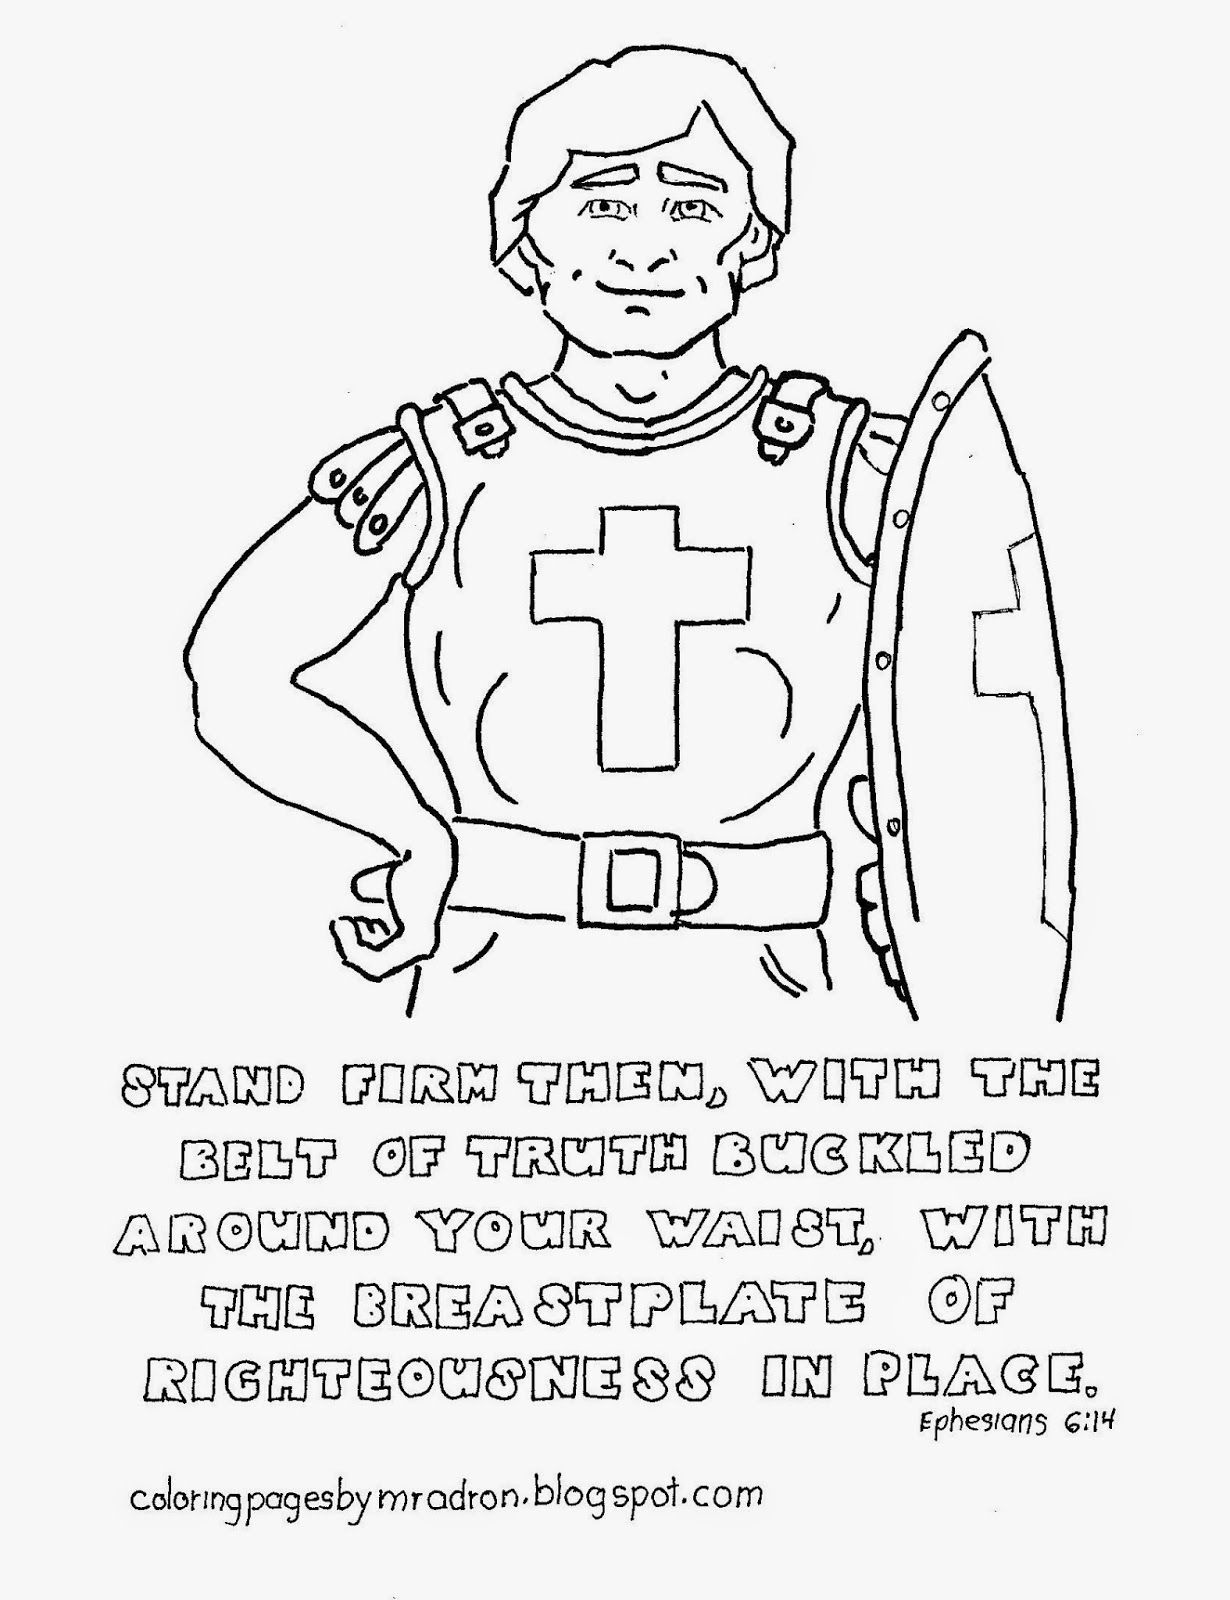 Coloring Pages For Kids By Mr Adron Breastplate Of